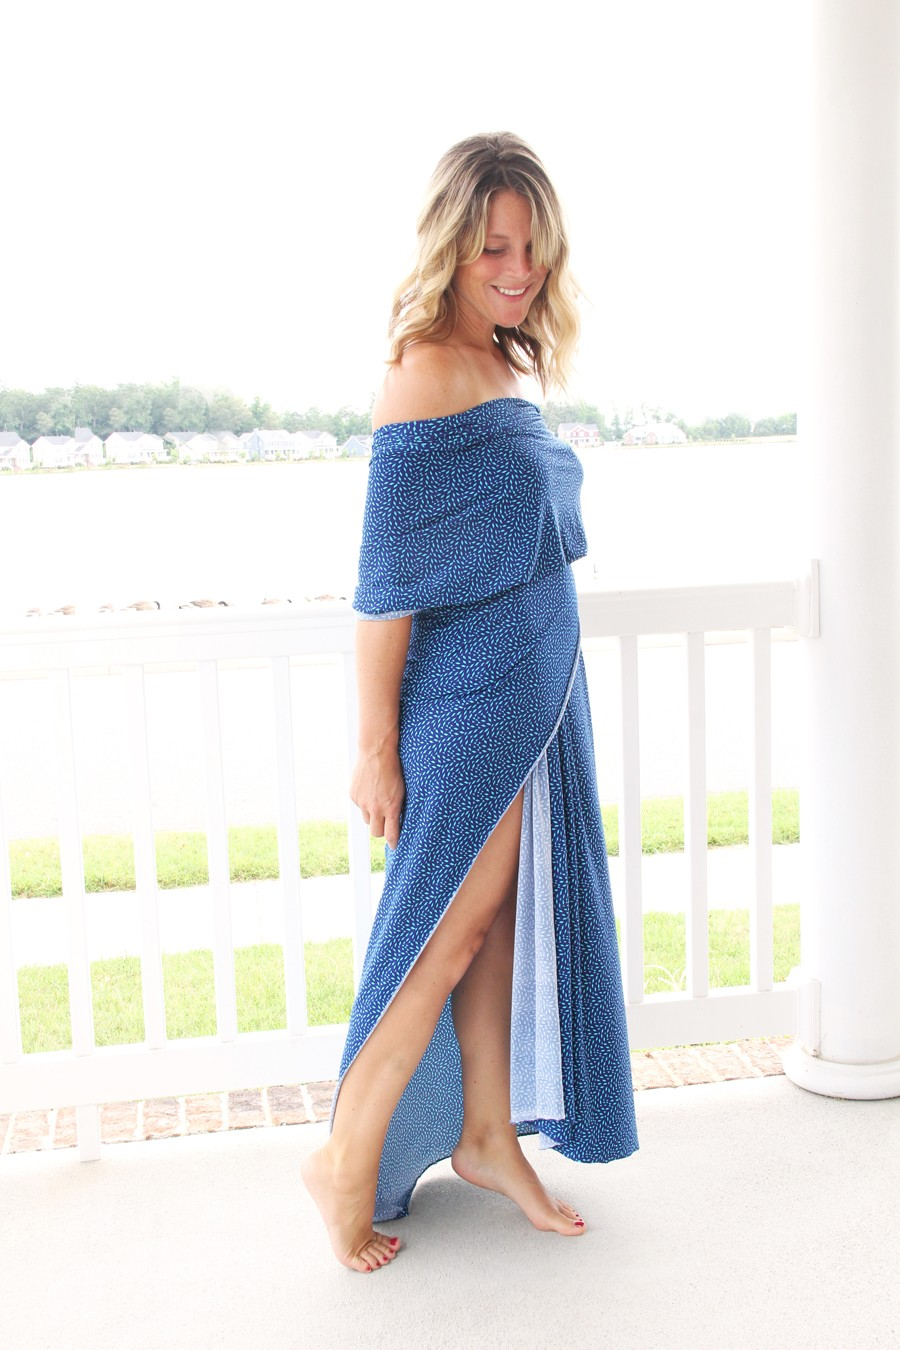 how to strategically wrap knit fabric to make a gorgeous no-sew knit maxi dress!